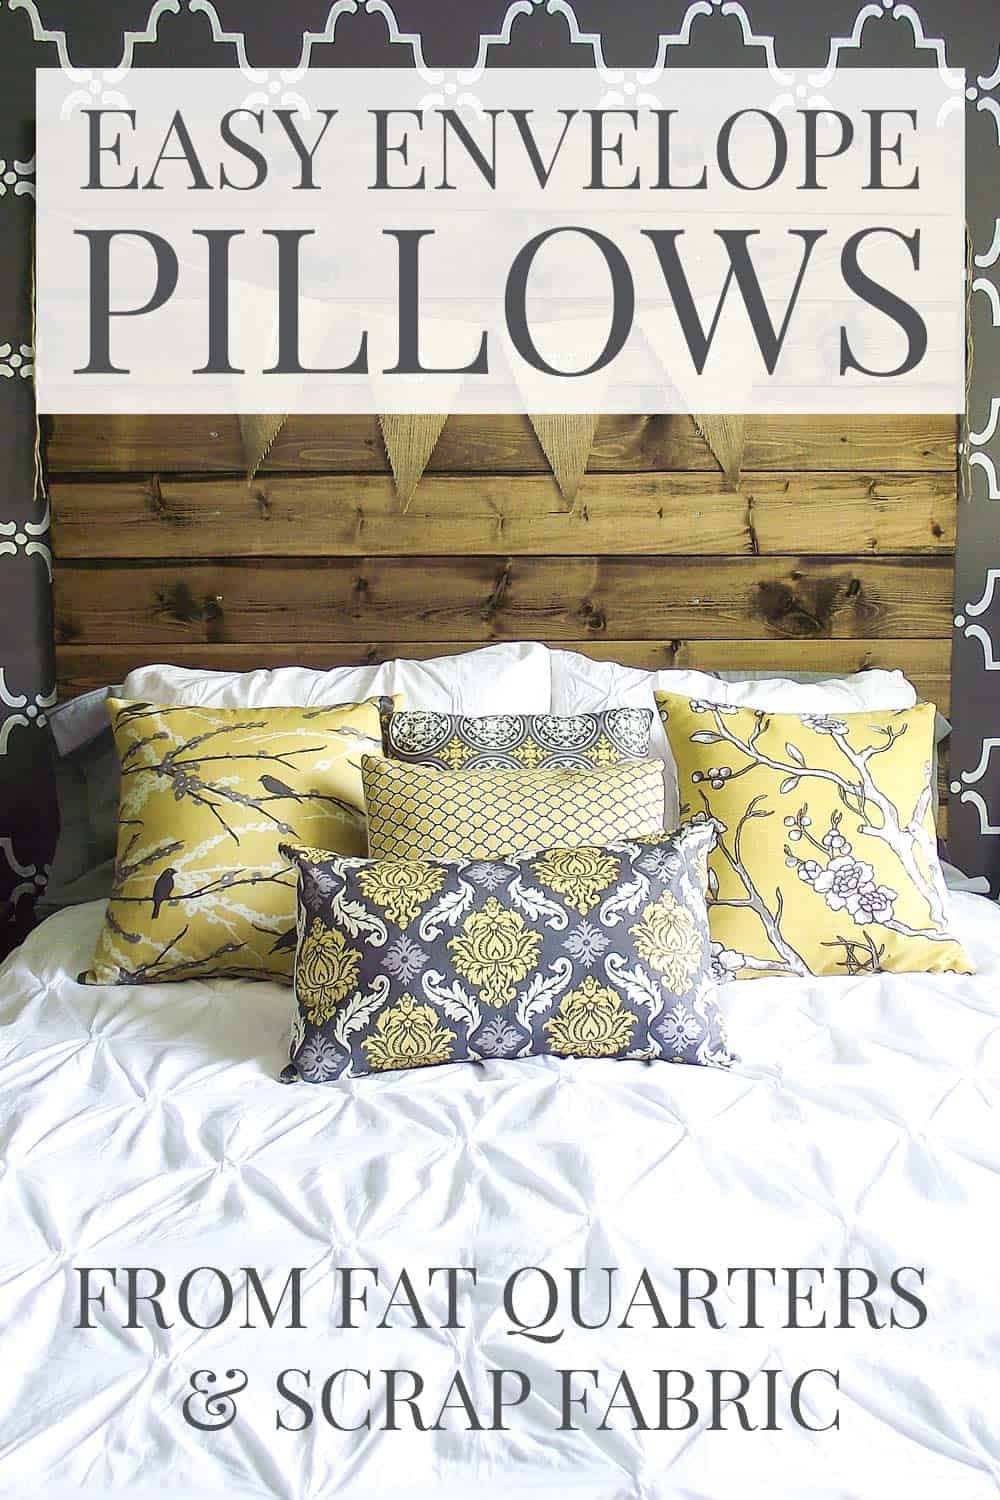 yellow and grey pillows on a bed with white duvet